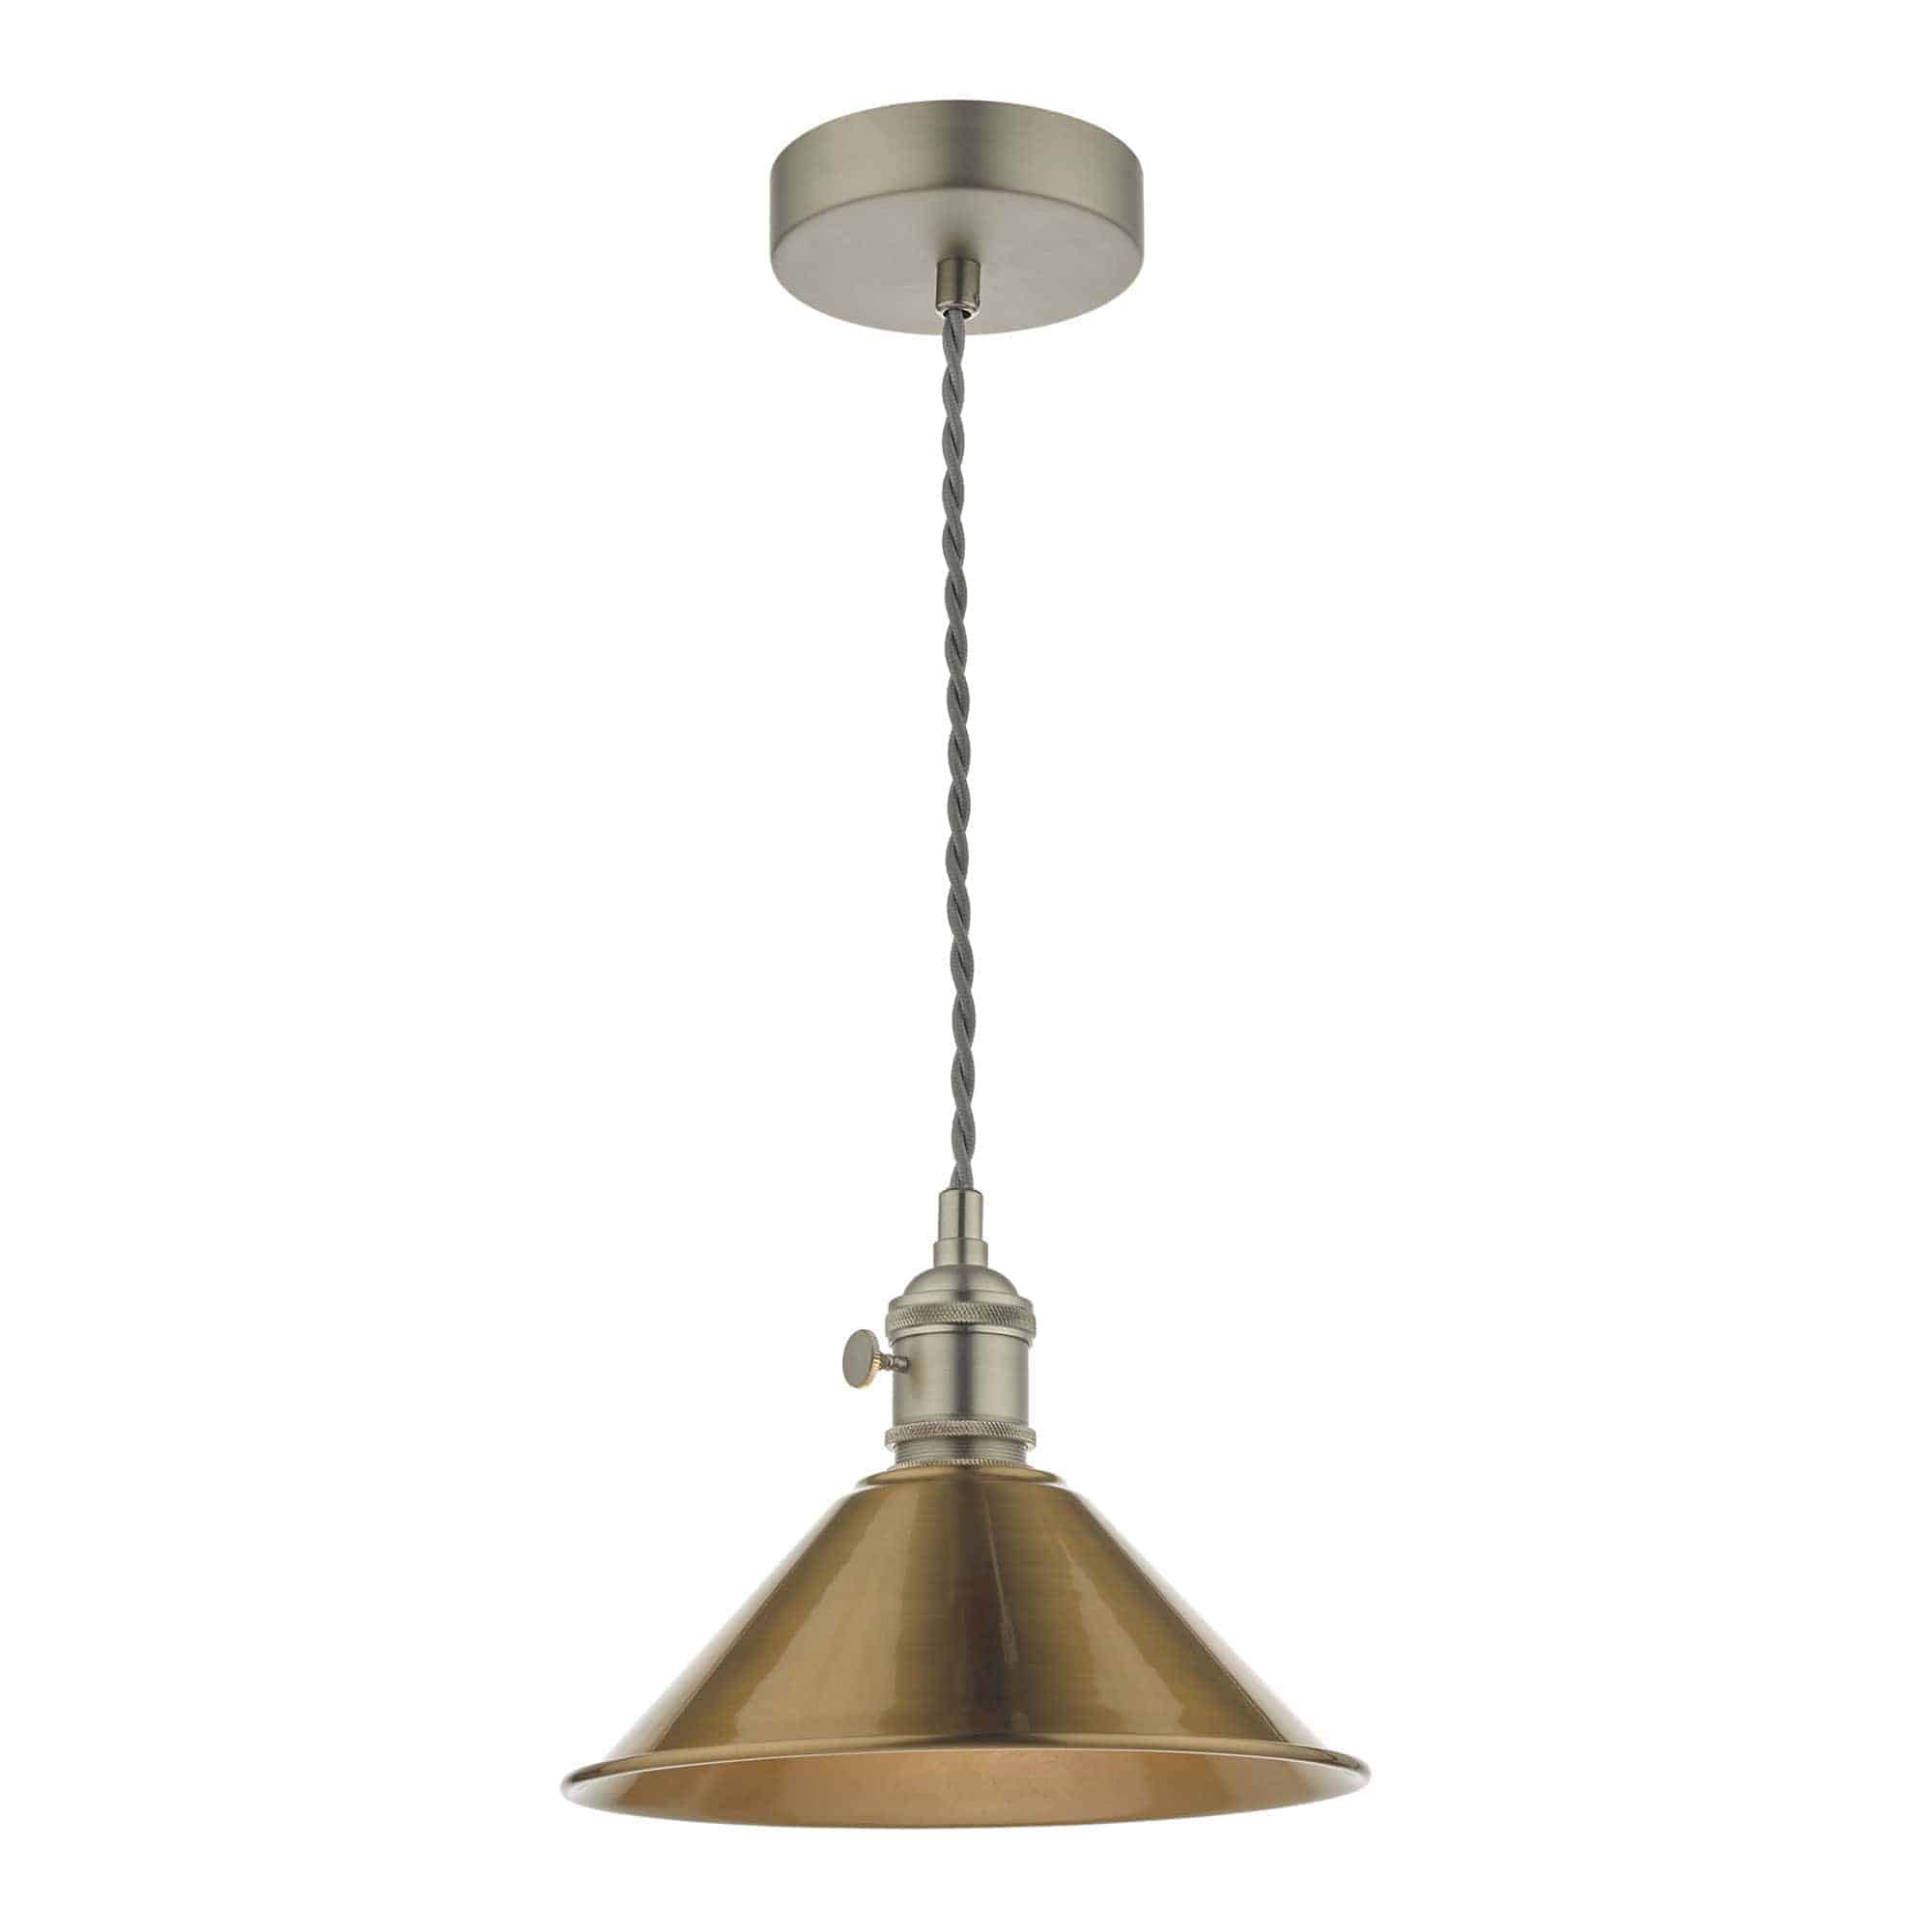 Dar HAD0161-01 Hadano 1 Light Pendant Antique Chrome With Aged Brass Shade